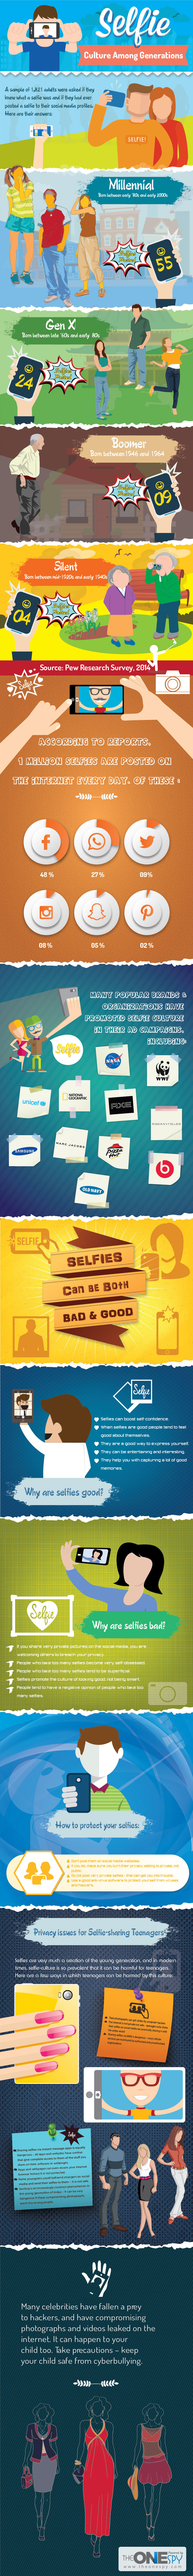 Selfie Culture Infographic